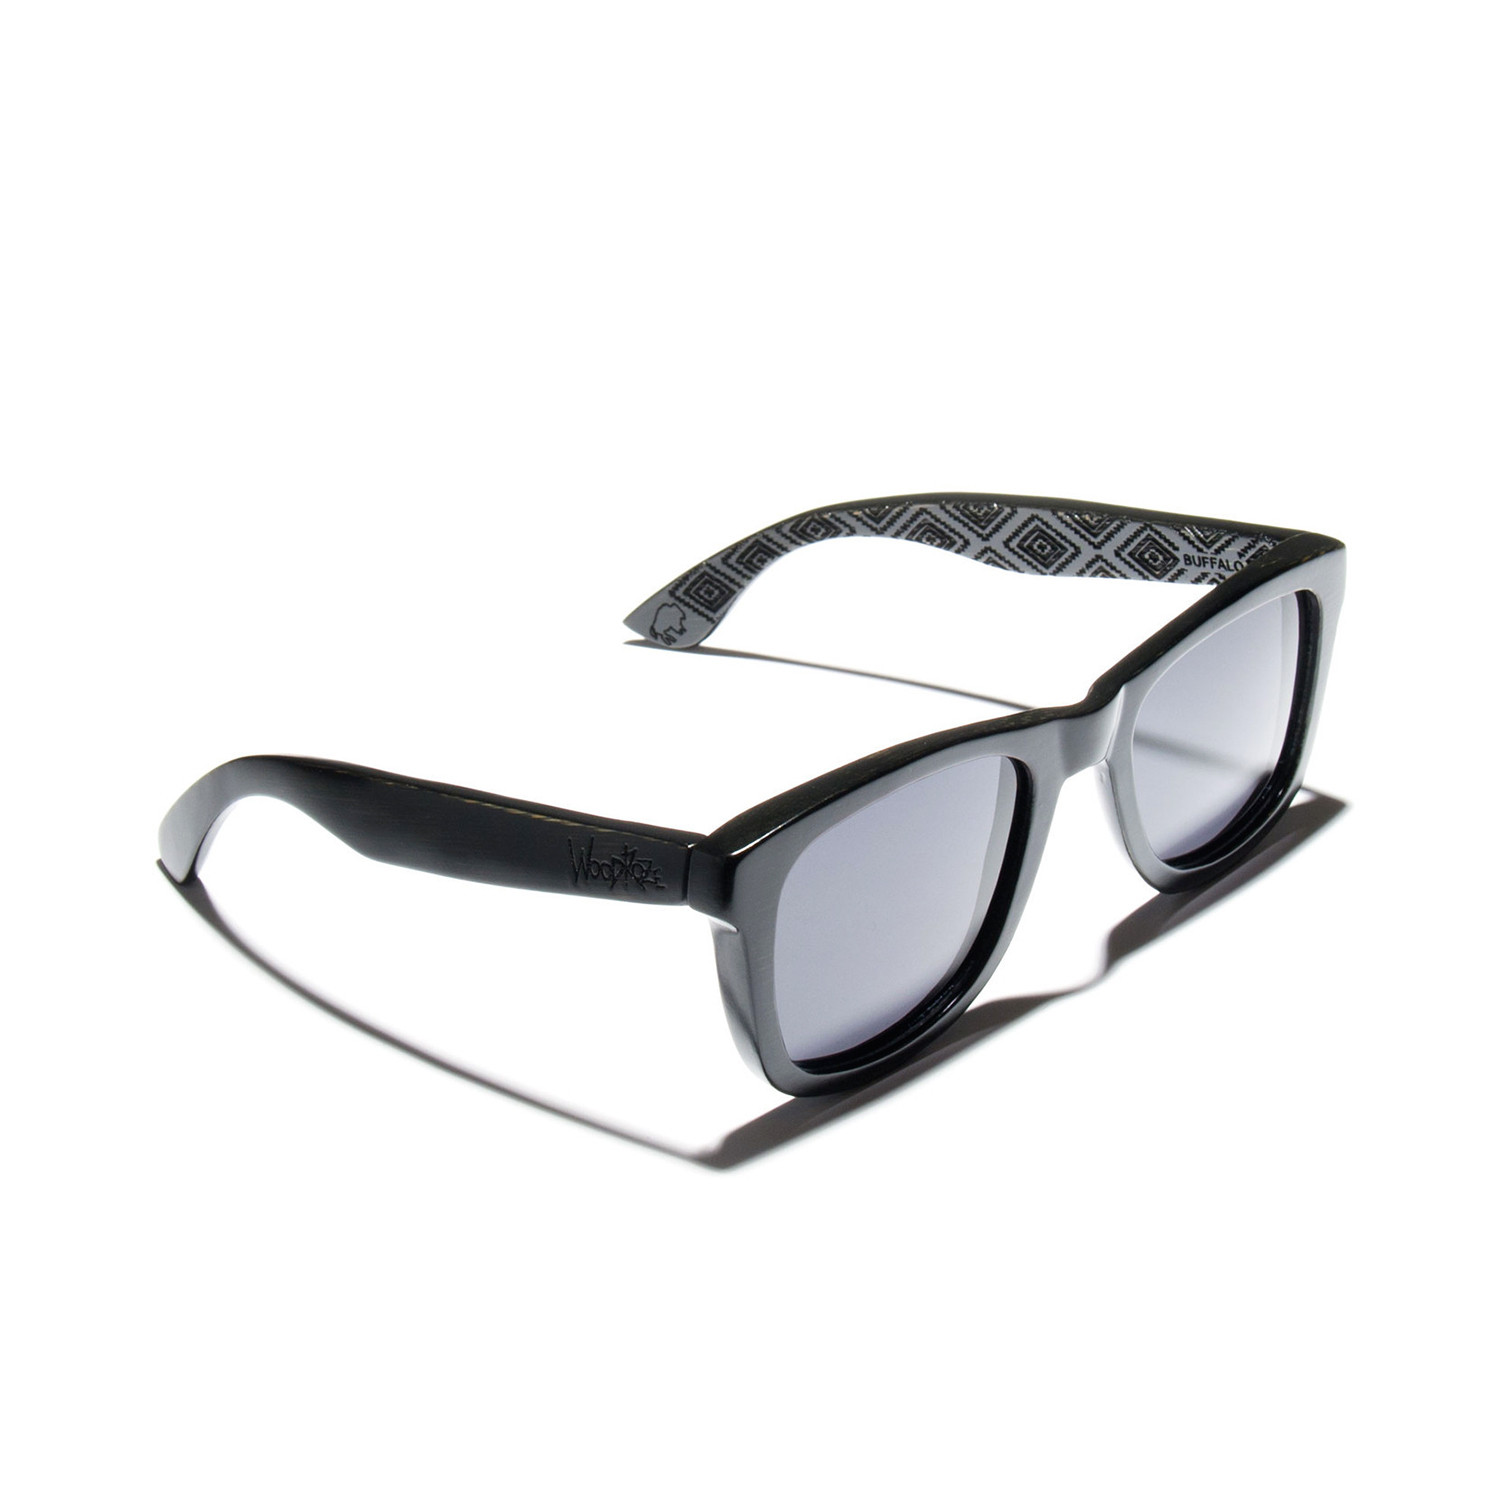 44e6f42b8f Buffalo Sunglasses    Black Bamboo (Polarized Bahama Mirror Blue ...